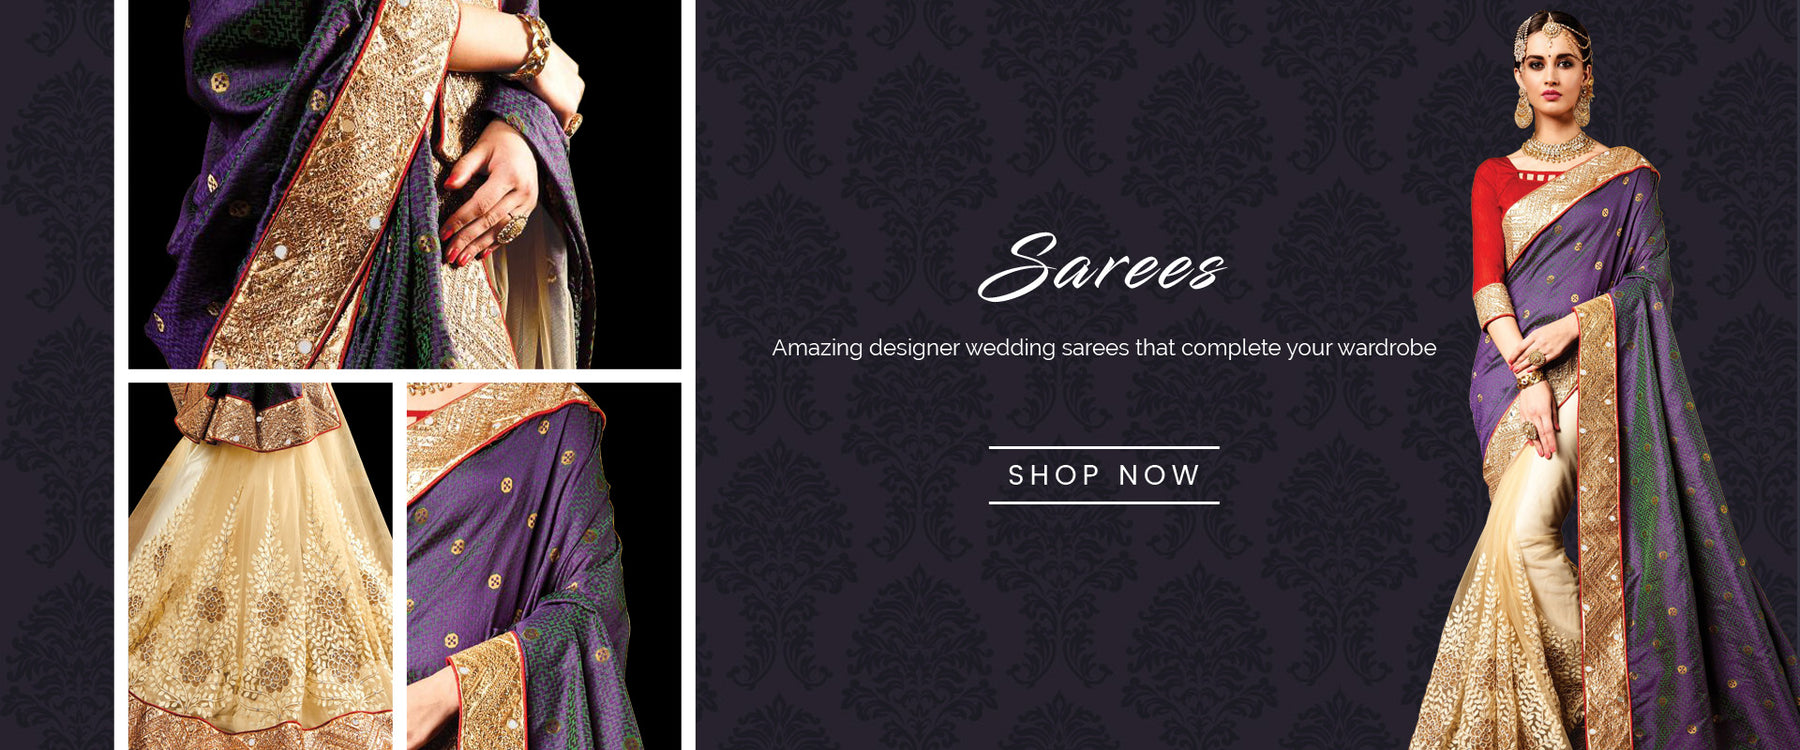 Sarees Online Shopping: Buy Designer Sarees online at best price on Variation. Shop from range of cotton, silk, chiffon, georgette and net sarees for wedding party, reception and farewell functions. Shipping worldwide including India, USA, UK and Canada.